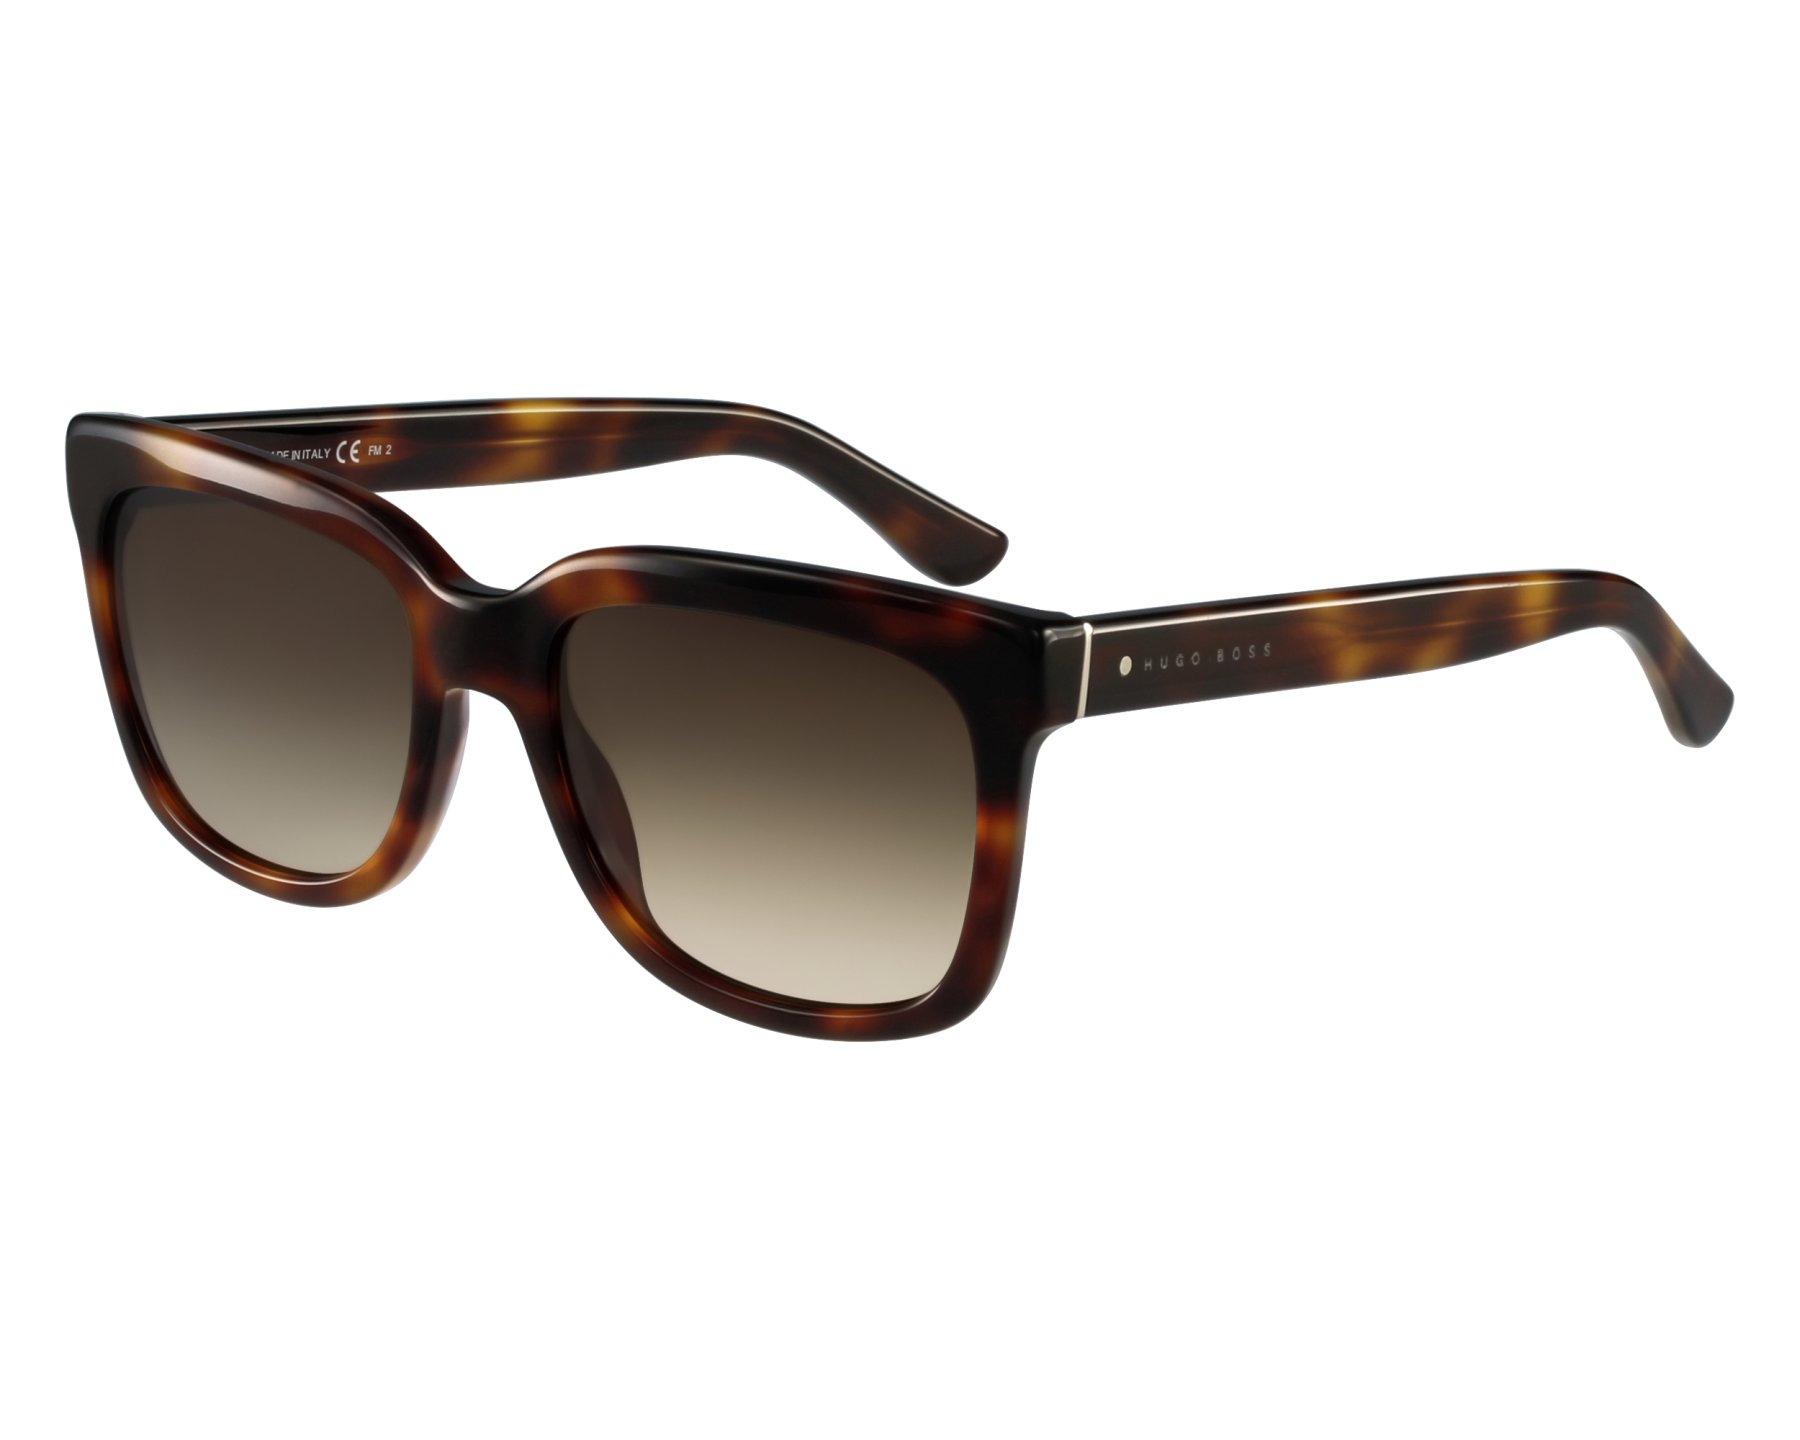 Boss Sunglasses 0741/S JD Havana, 54 HUGO BOSS